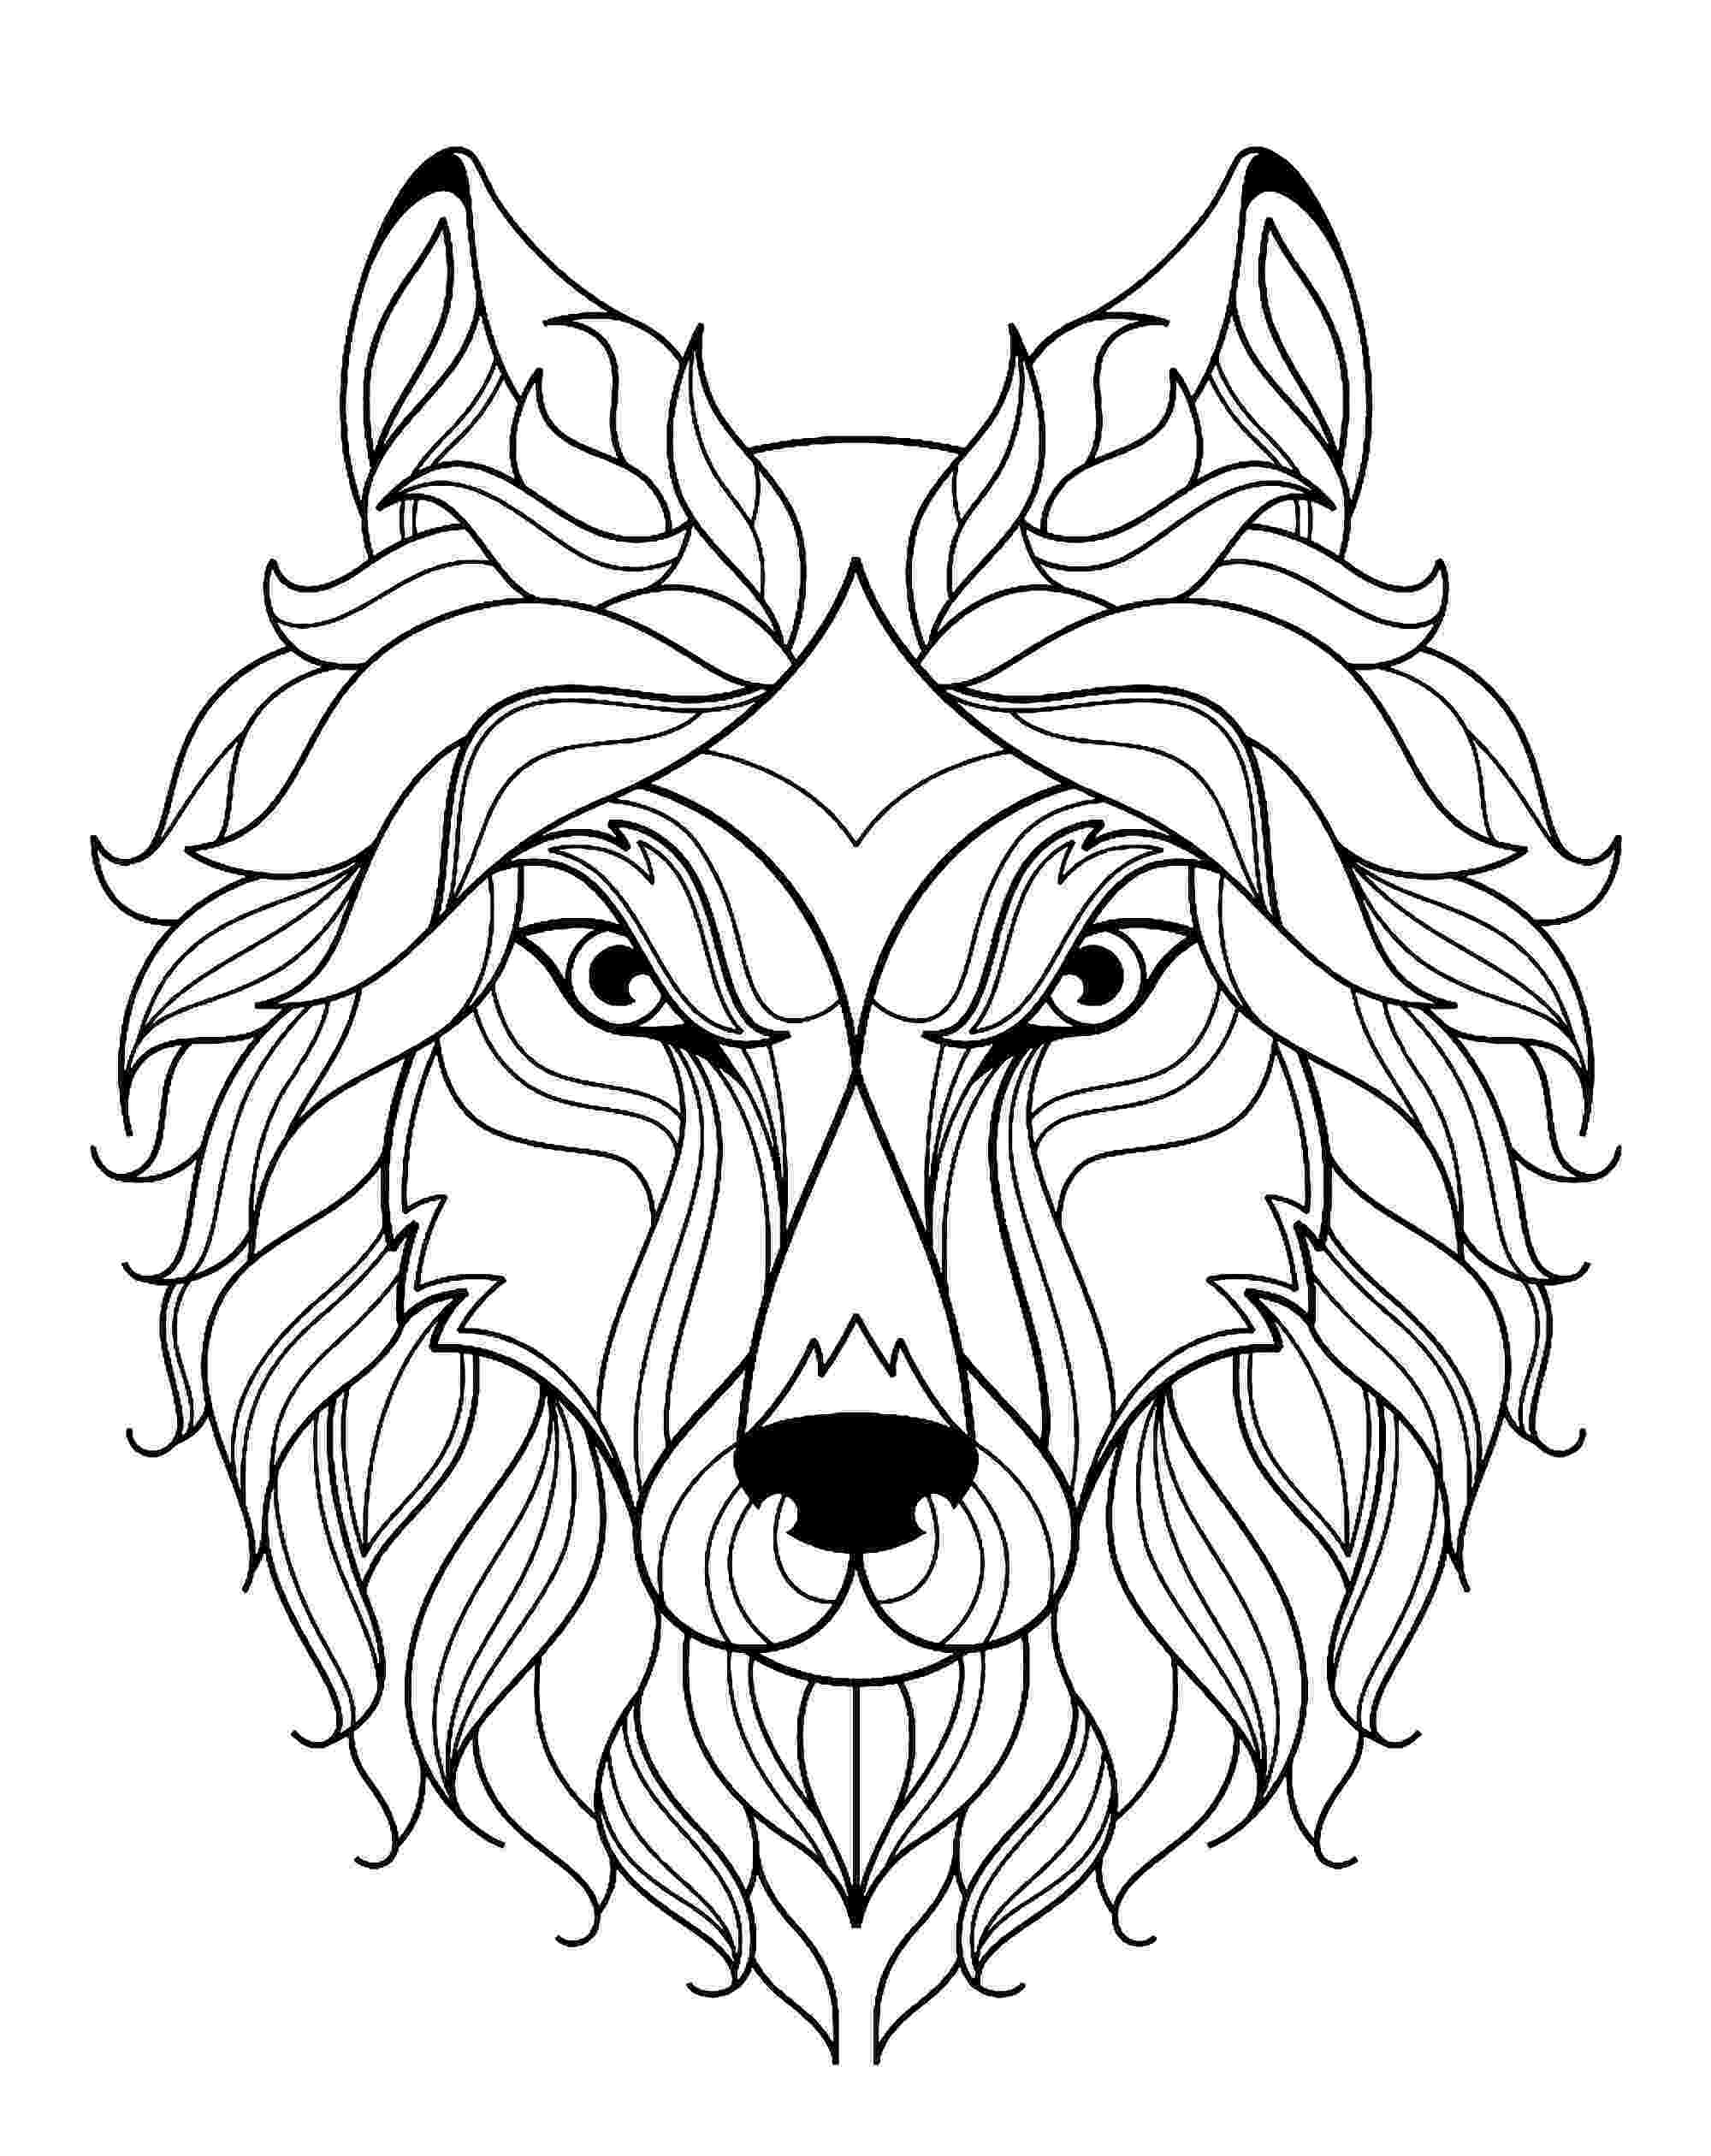 coloring pages for hairstyle coloring pages to download and print for free coloring pages for